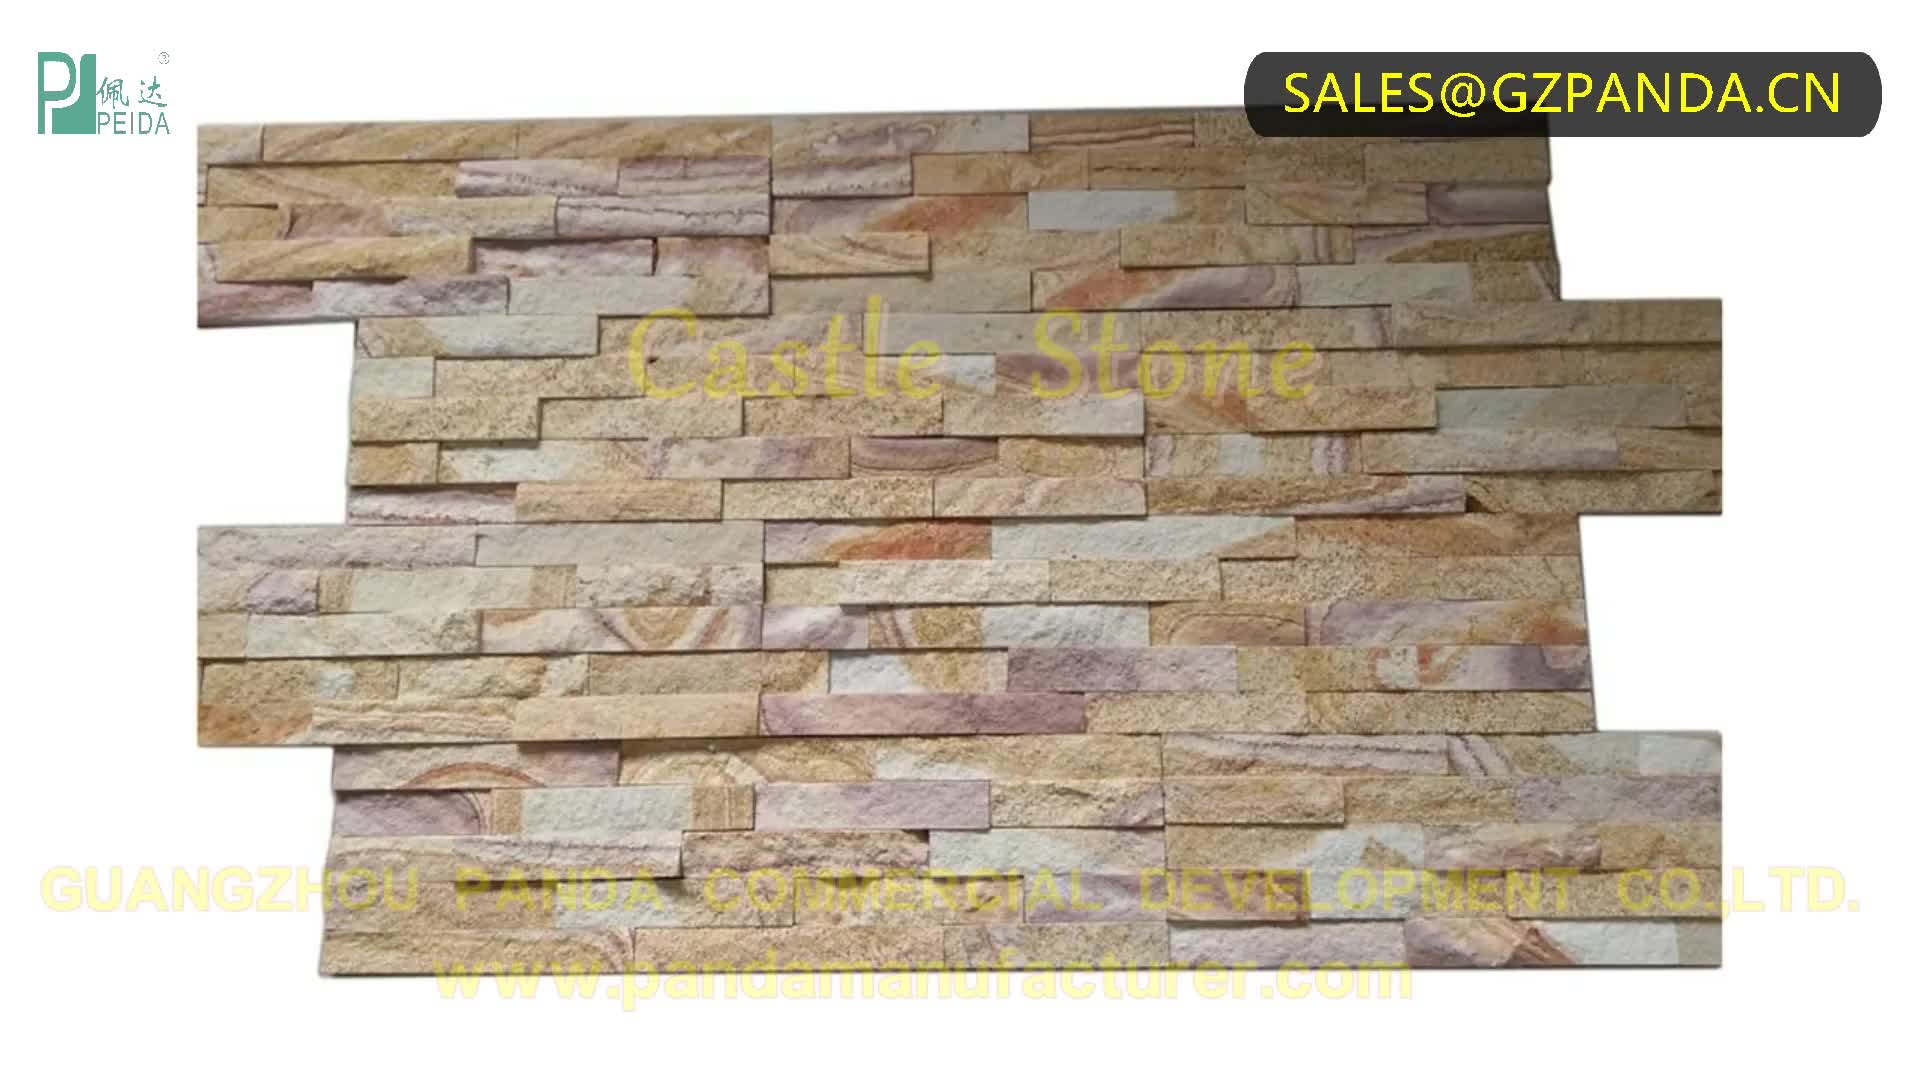 Exterior Decorative High Quality Material Artificial Culture Wall Ledge Stones